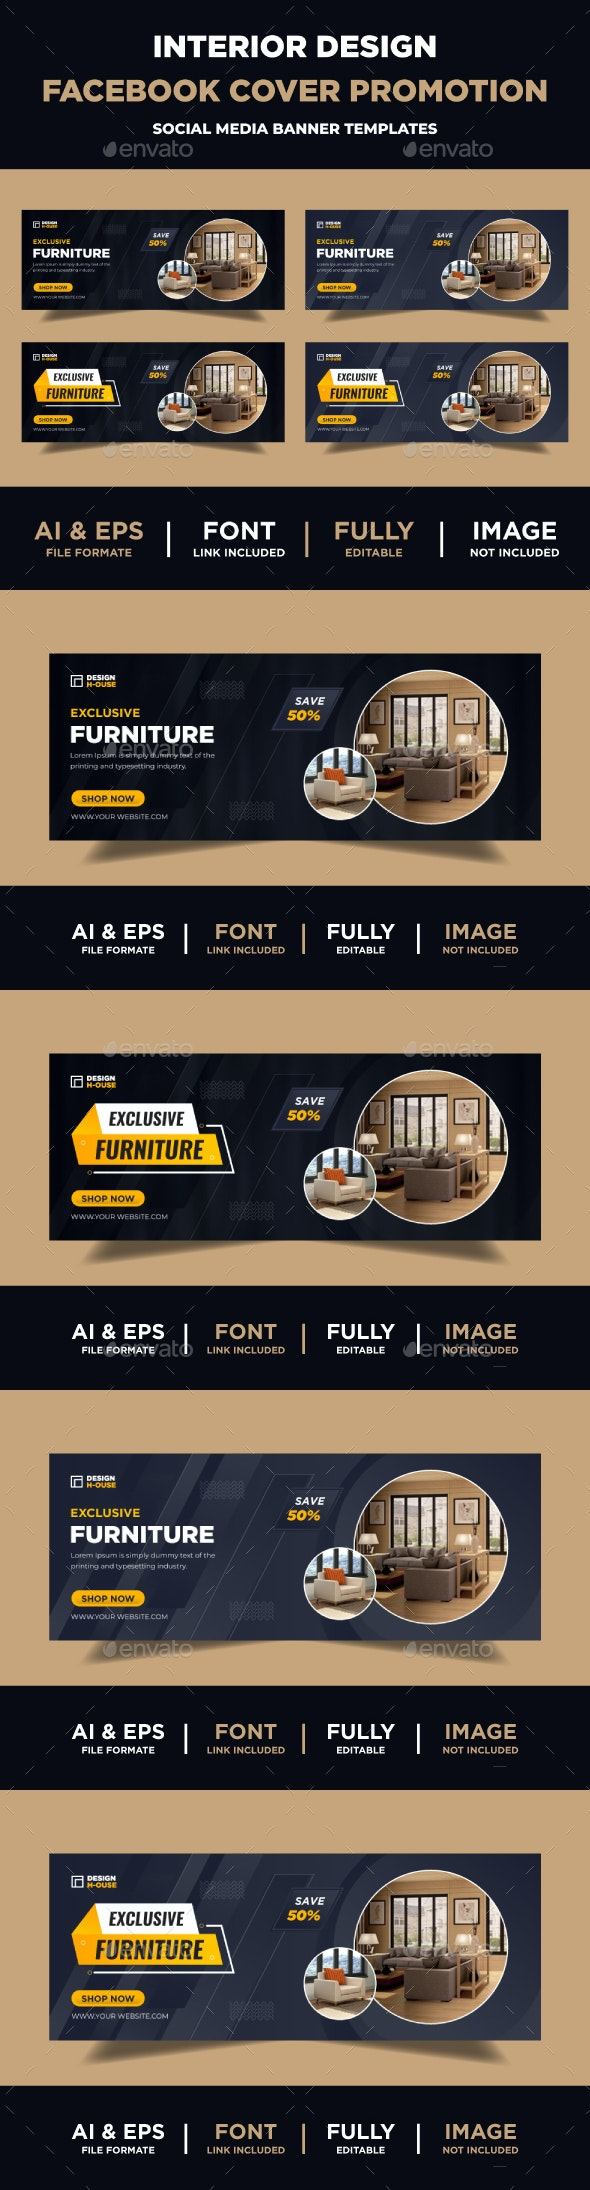 Furniture Facebook Cover Templates - Facebook Timeline Covers Social Media